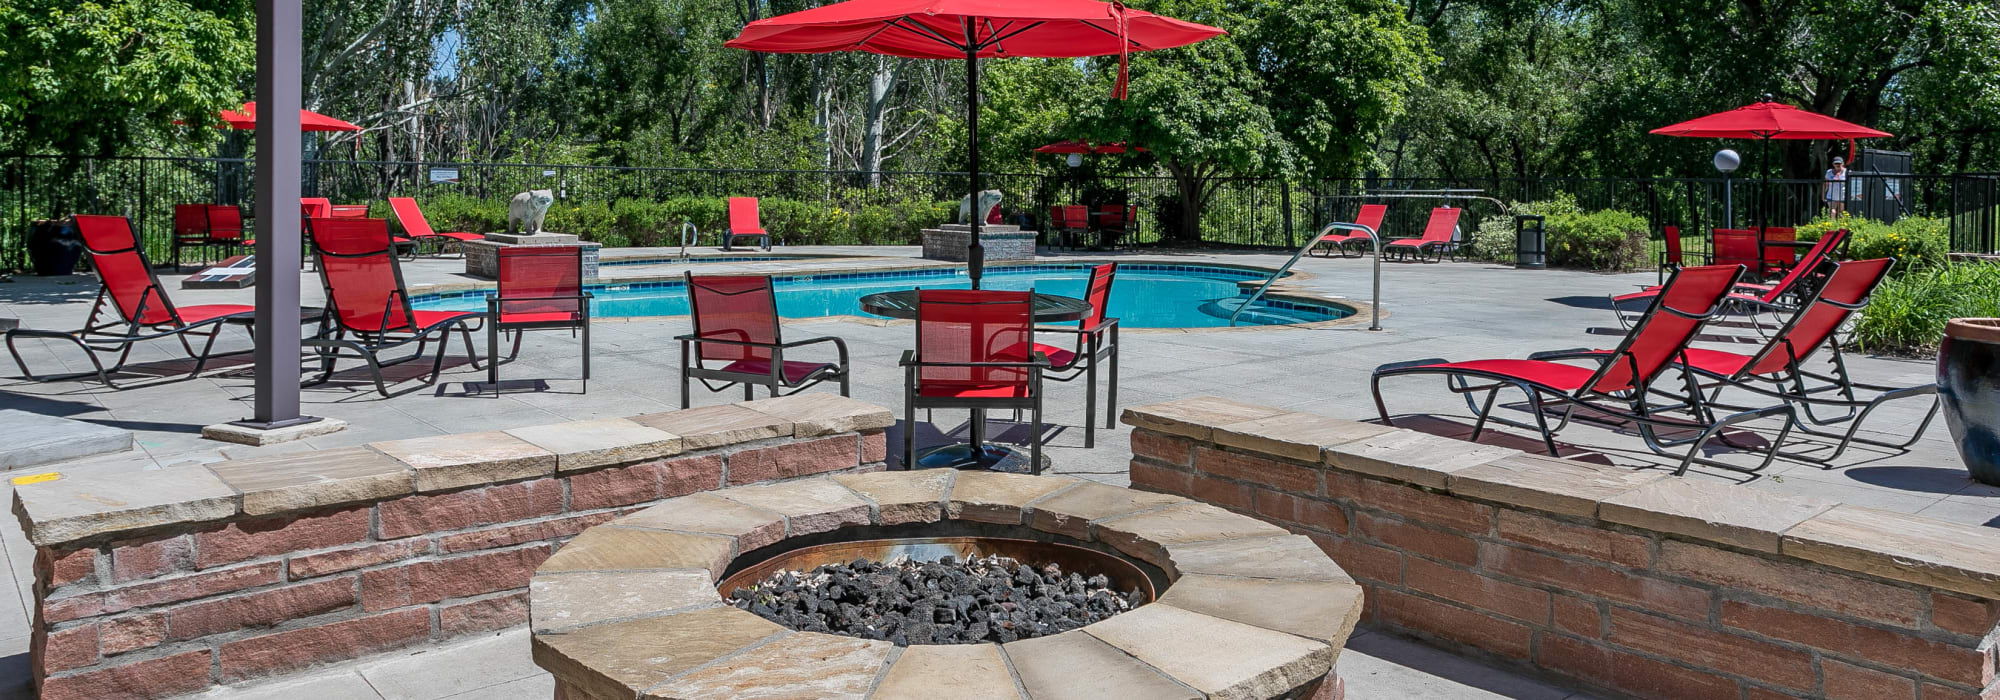 Contact us at The Crossings at Bear Creek Apartments in Lakewood, Colorado